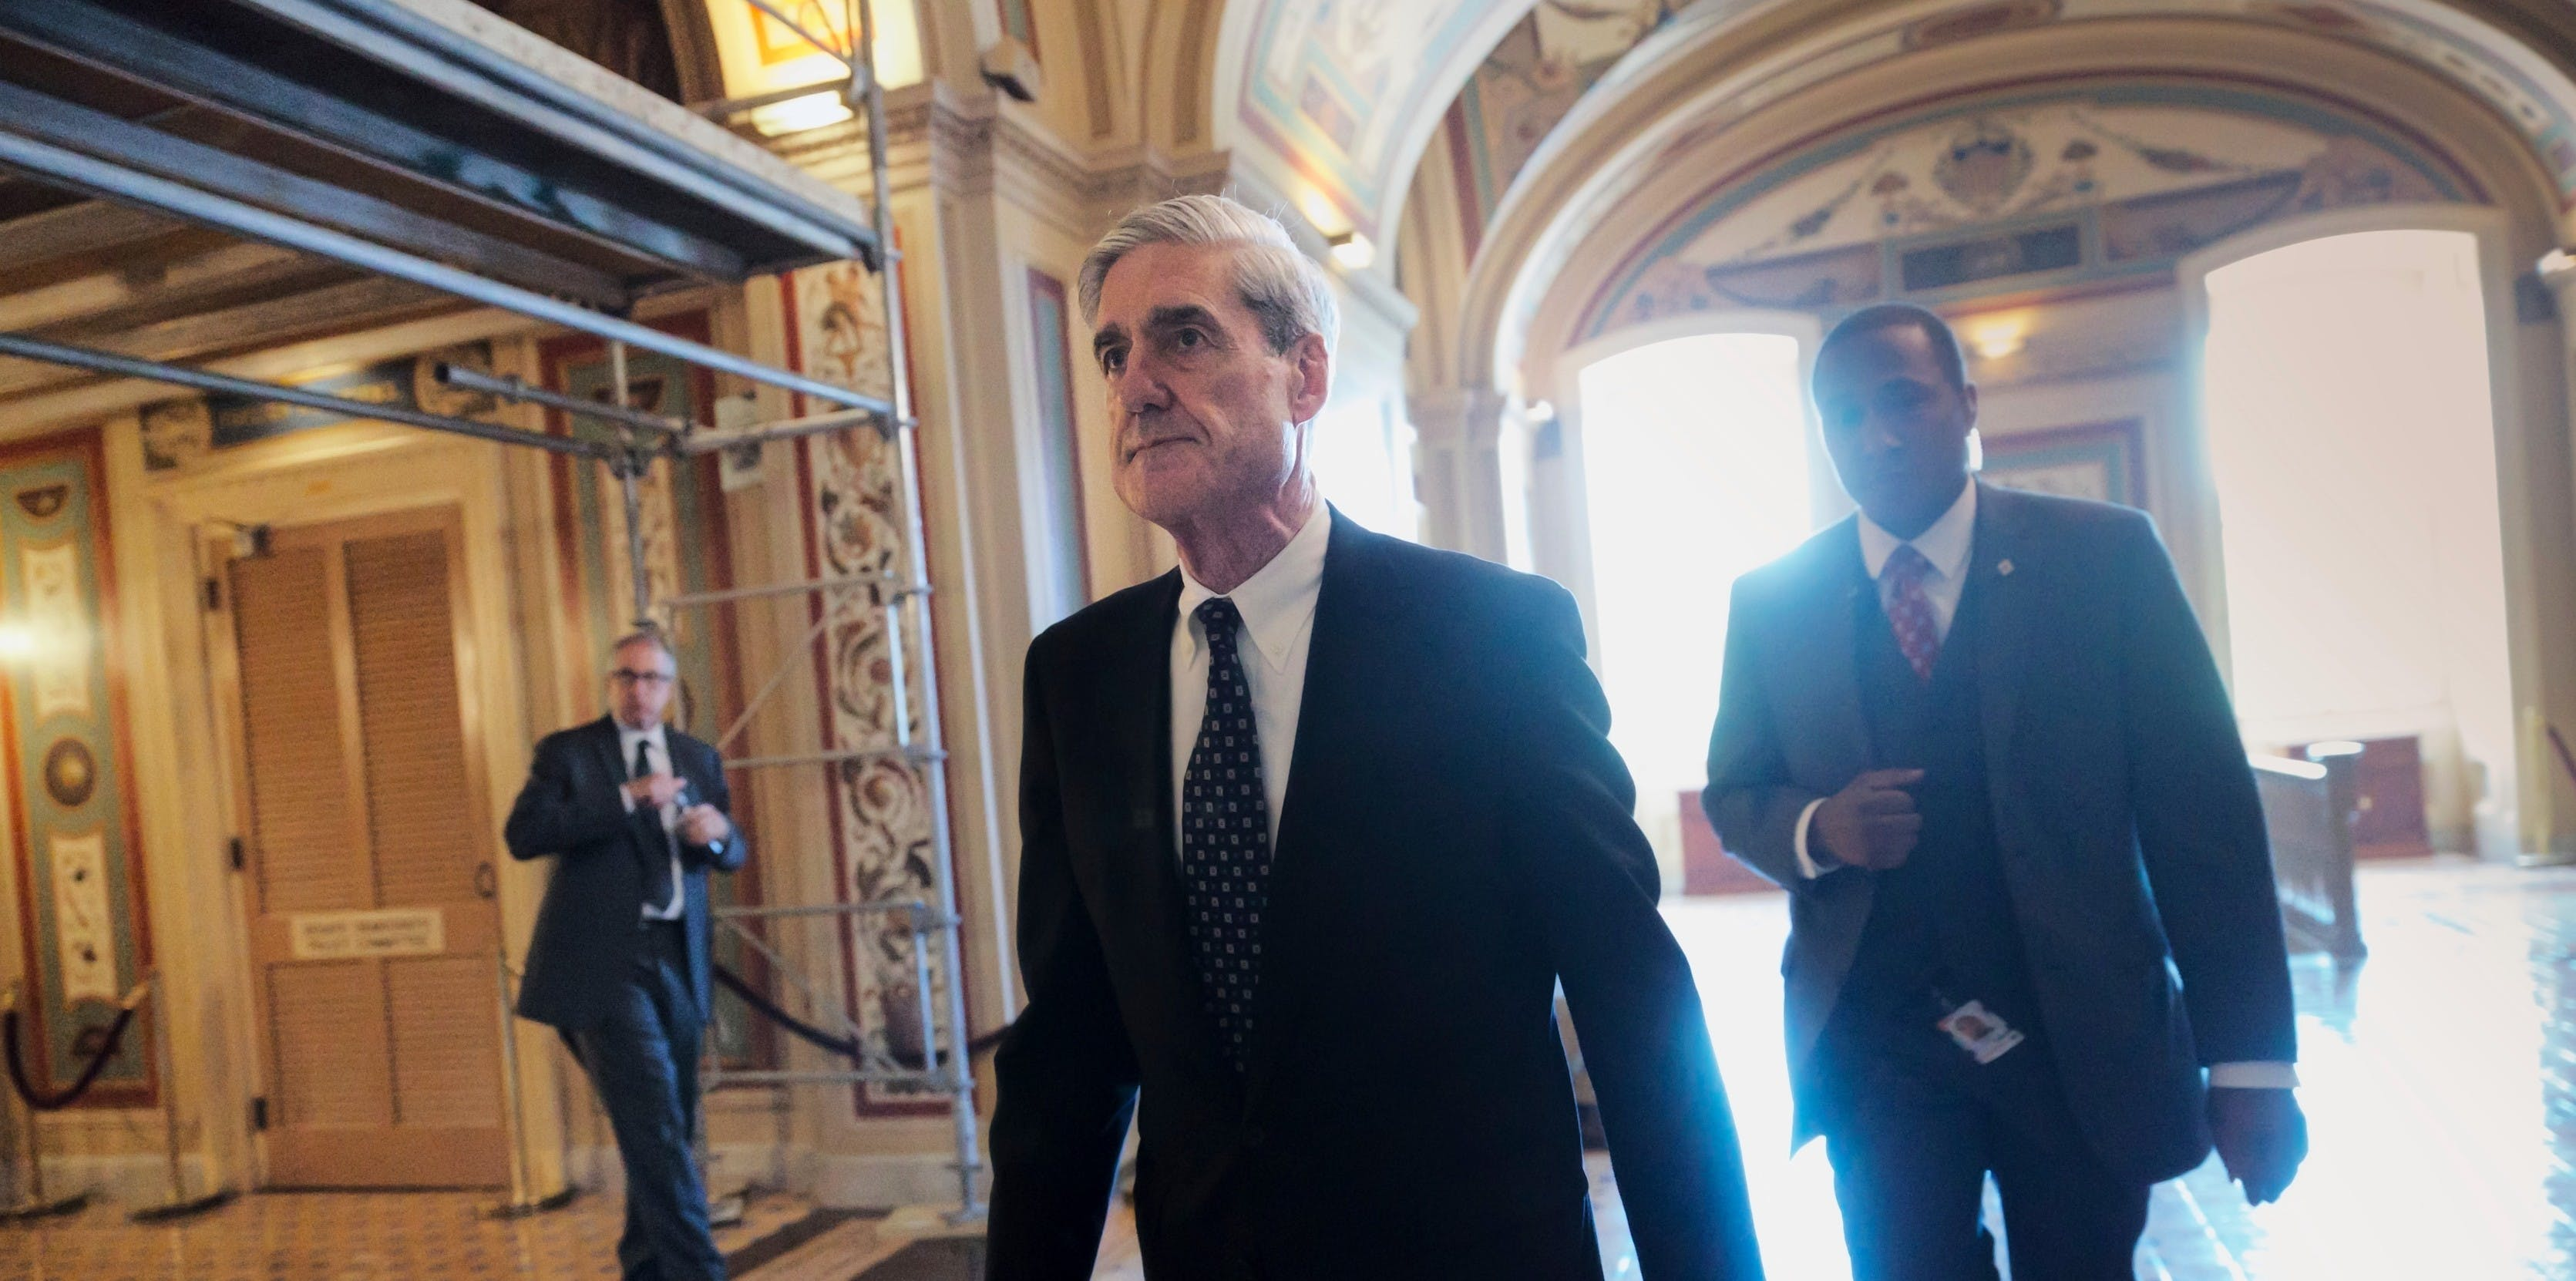 As the Mueller Probe Heats Up, Donald Trump's Lies Are Giving Way to the Truth